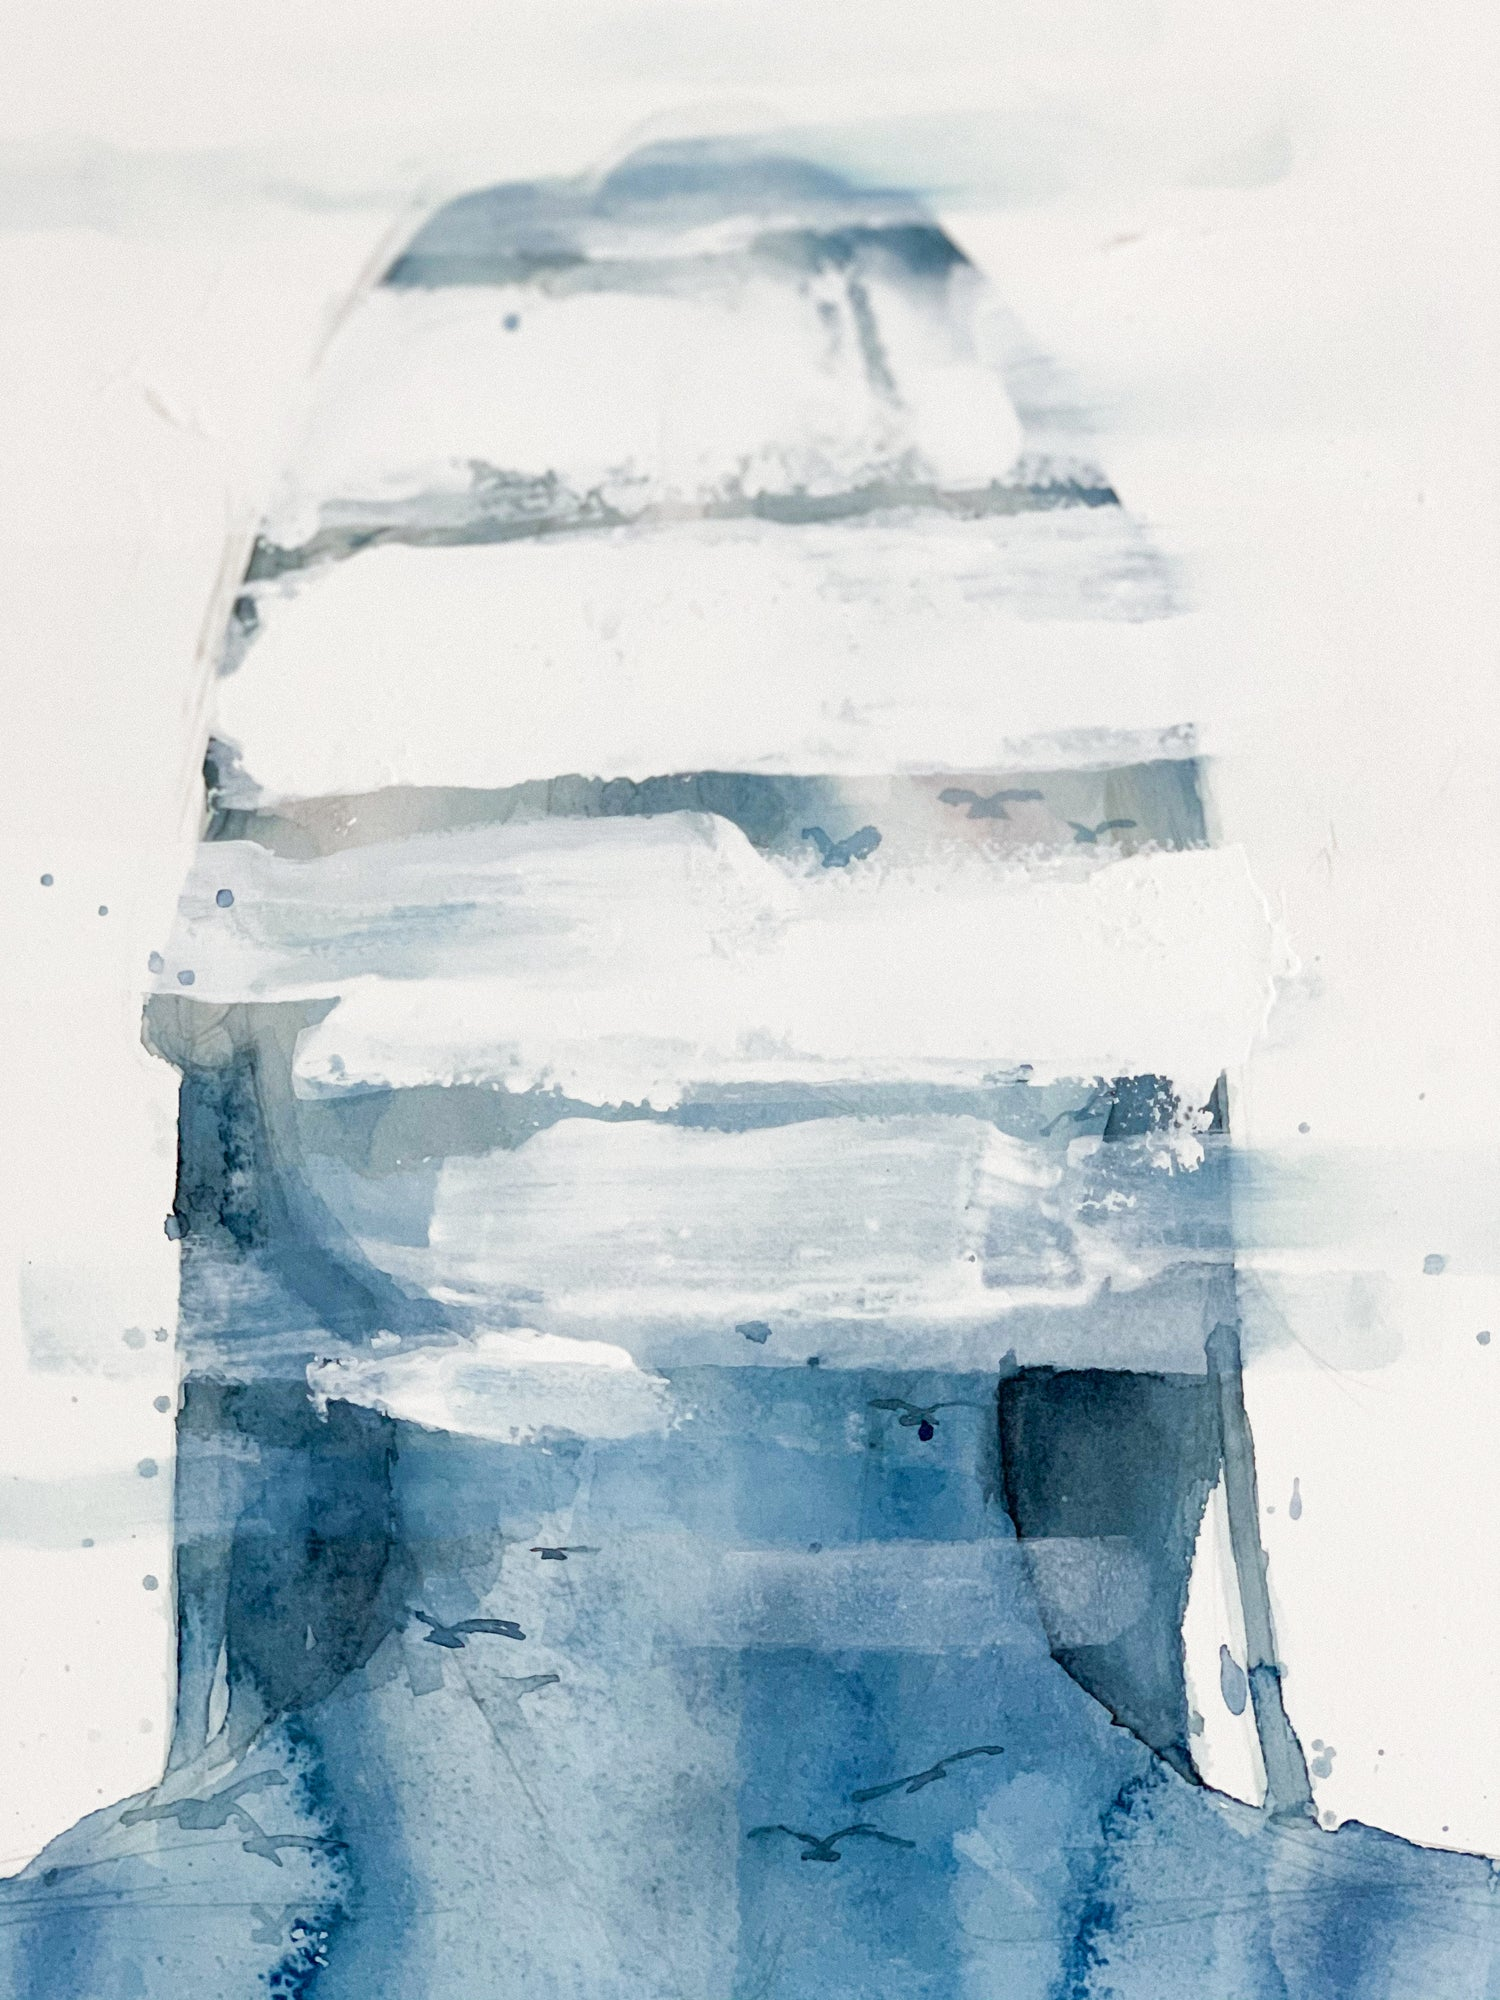 Agnes-Cecile staring at the sky